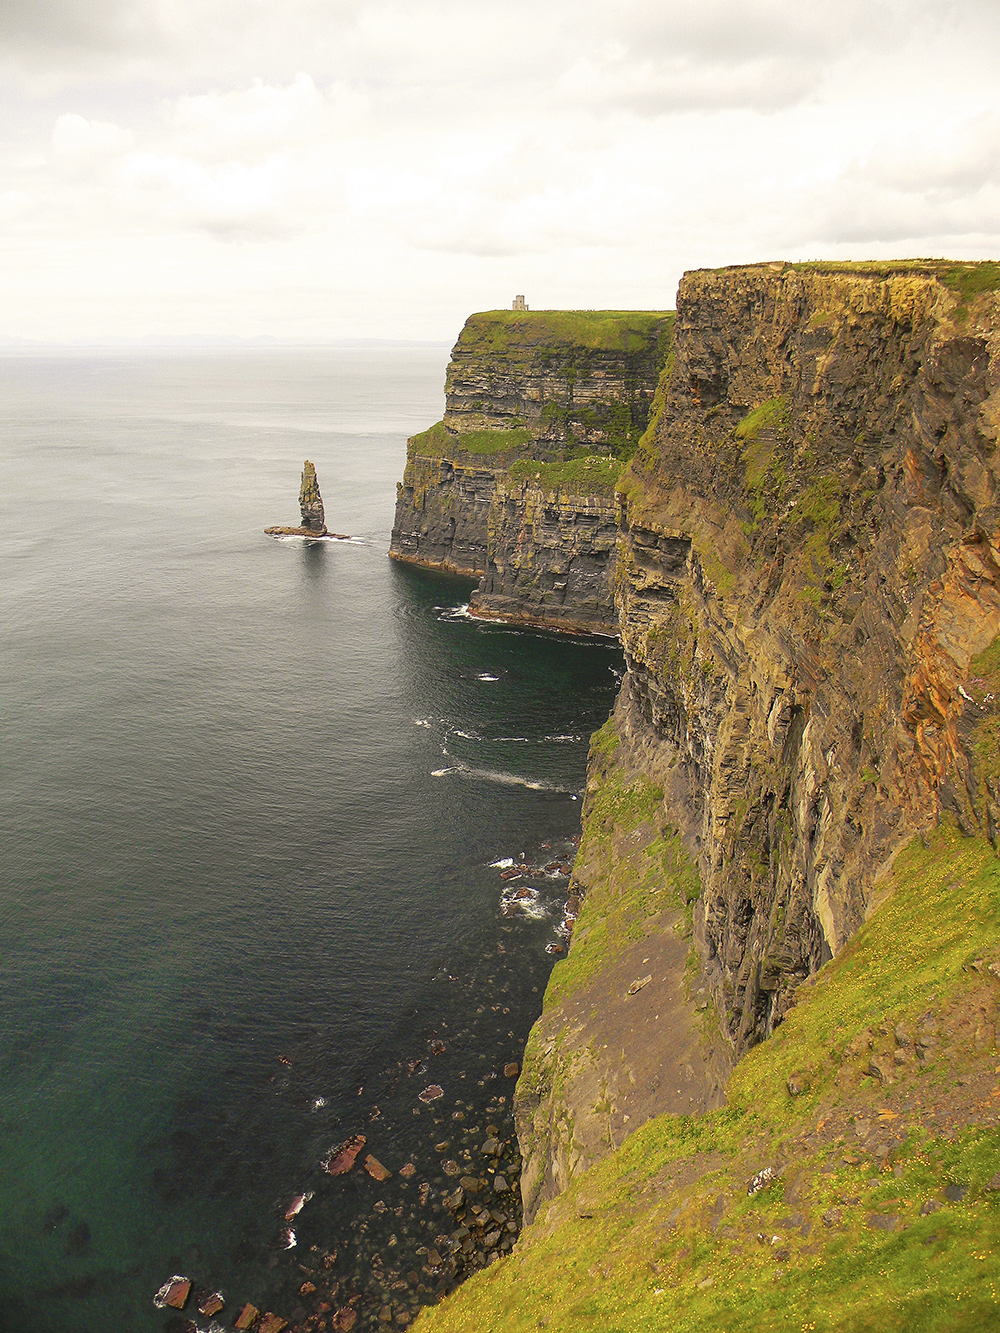 The Cliffs of Moher, Co Clare, Ireland